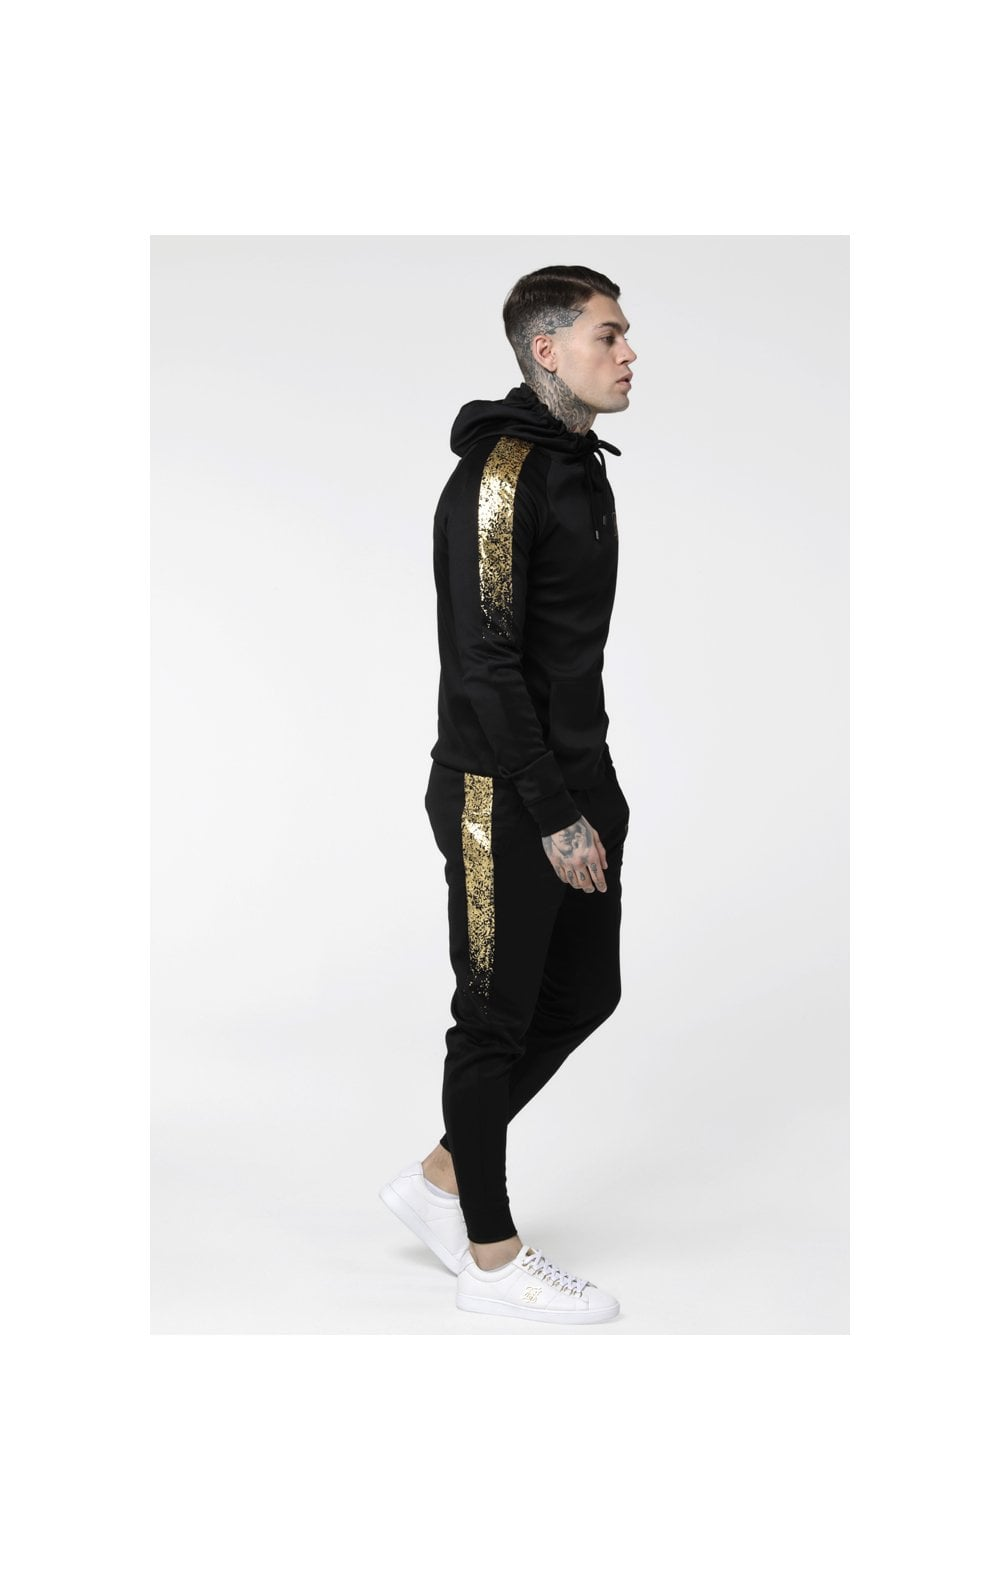 Load image into Gallery viewer, SikSilk Foil Fade Overhead Hoodie - Black & Gold (1)